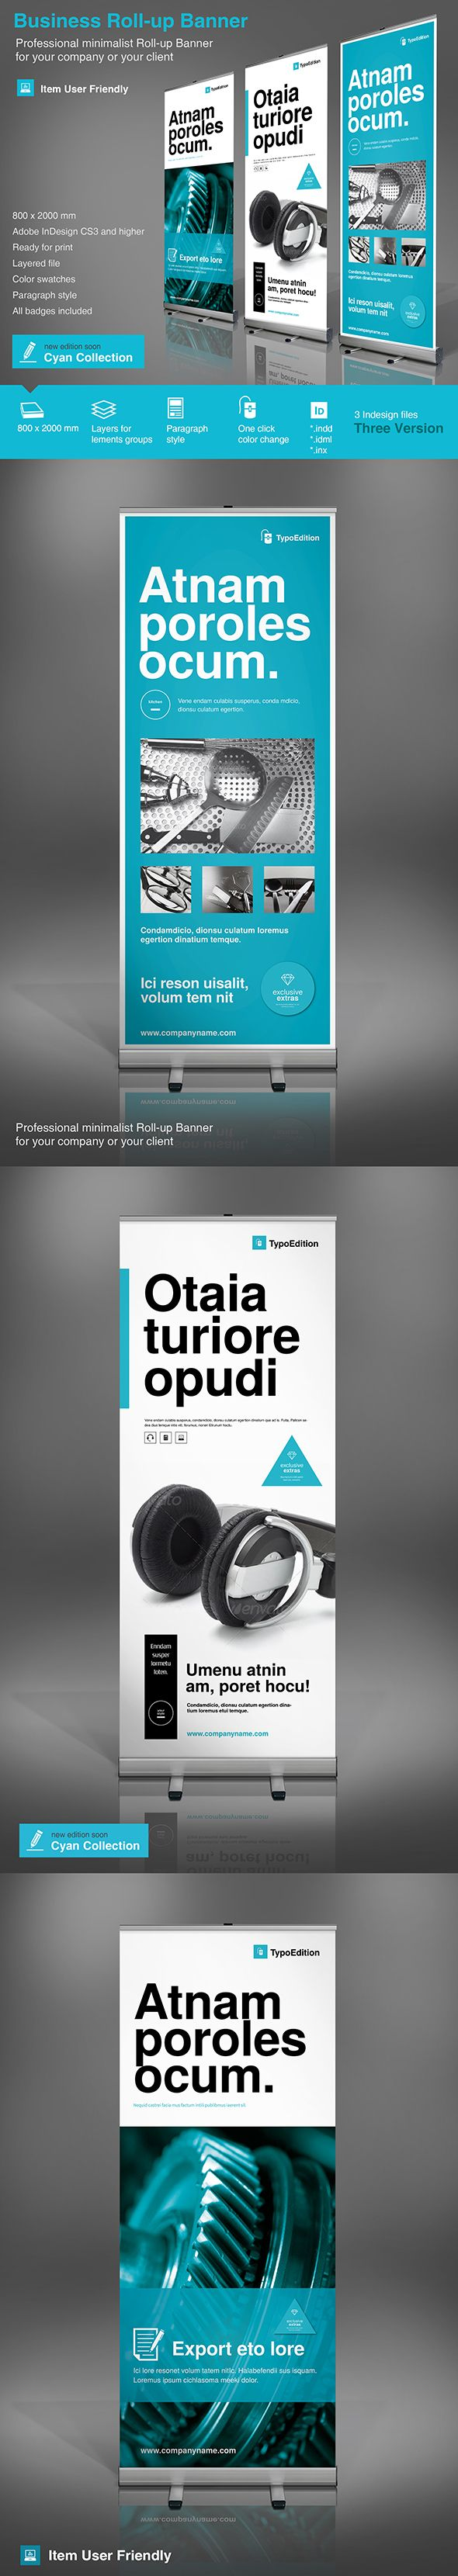 Corporate Banner. Modern and clean design for banner/rollup. Perfect for PR agency or other business promotion. All elements are editable.FeaturesAdobe InDesign CS4 and higher)800×2000 mm (31.5×78.74 inches) + bleeds 25 mmReady for print (200 DPI CM…